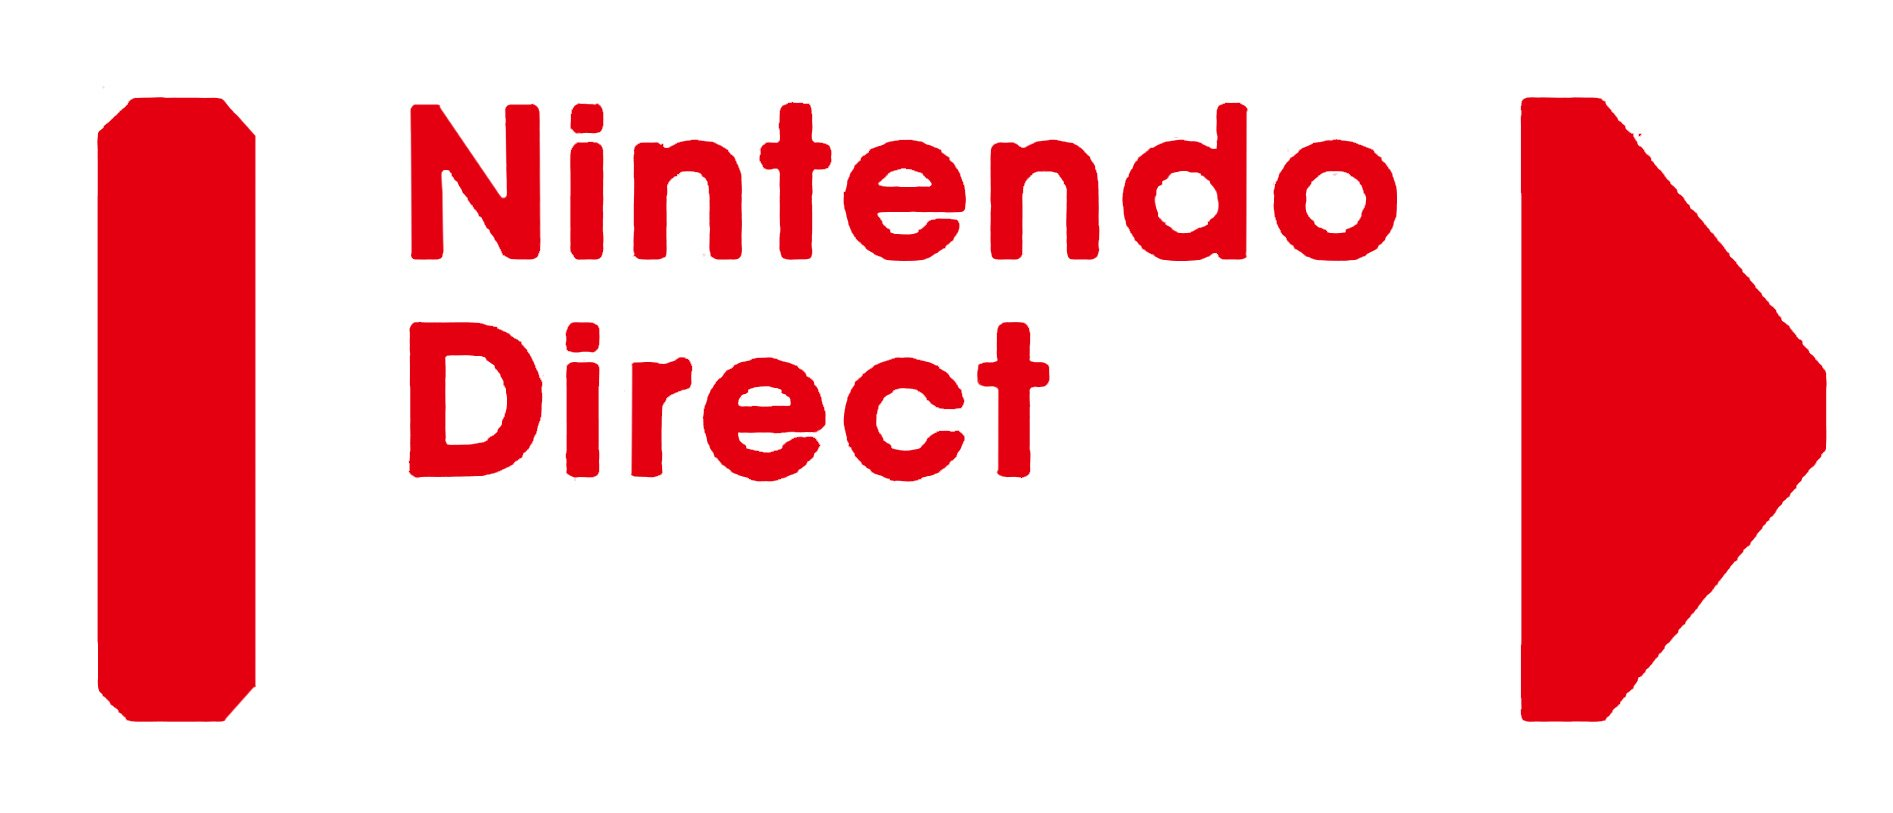 Nintendo of Russia might have let it slip that there's going to be a Direct soon screenshot